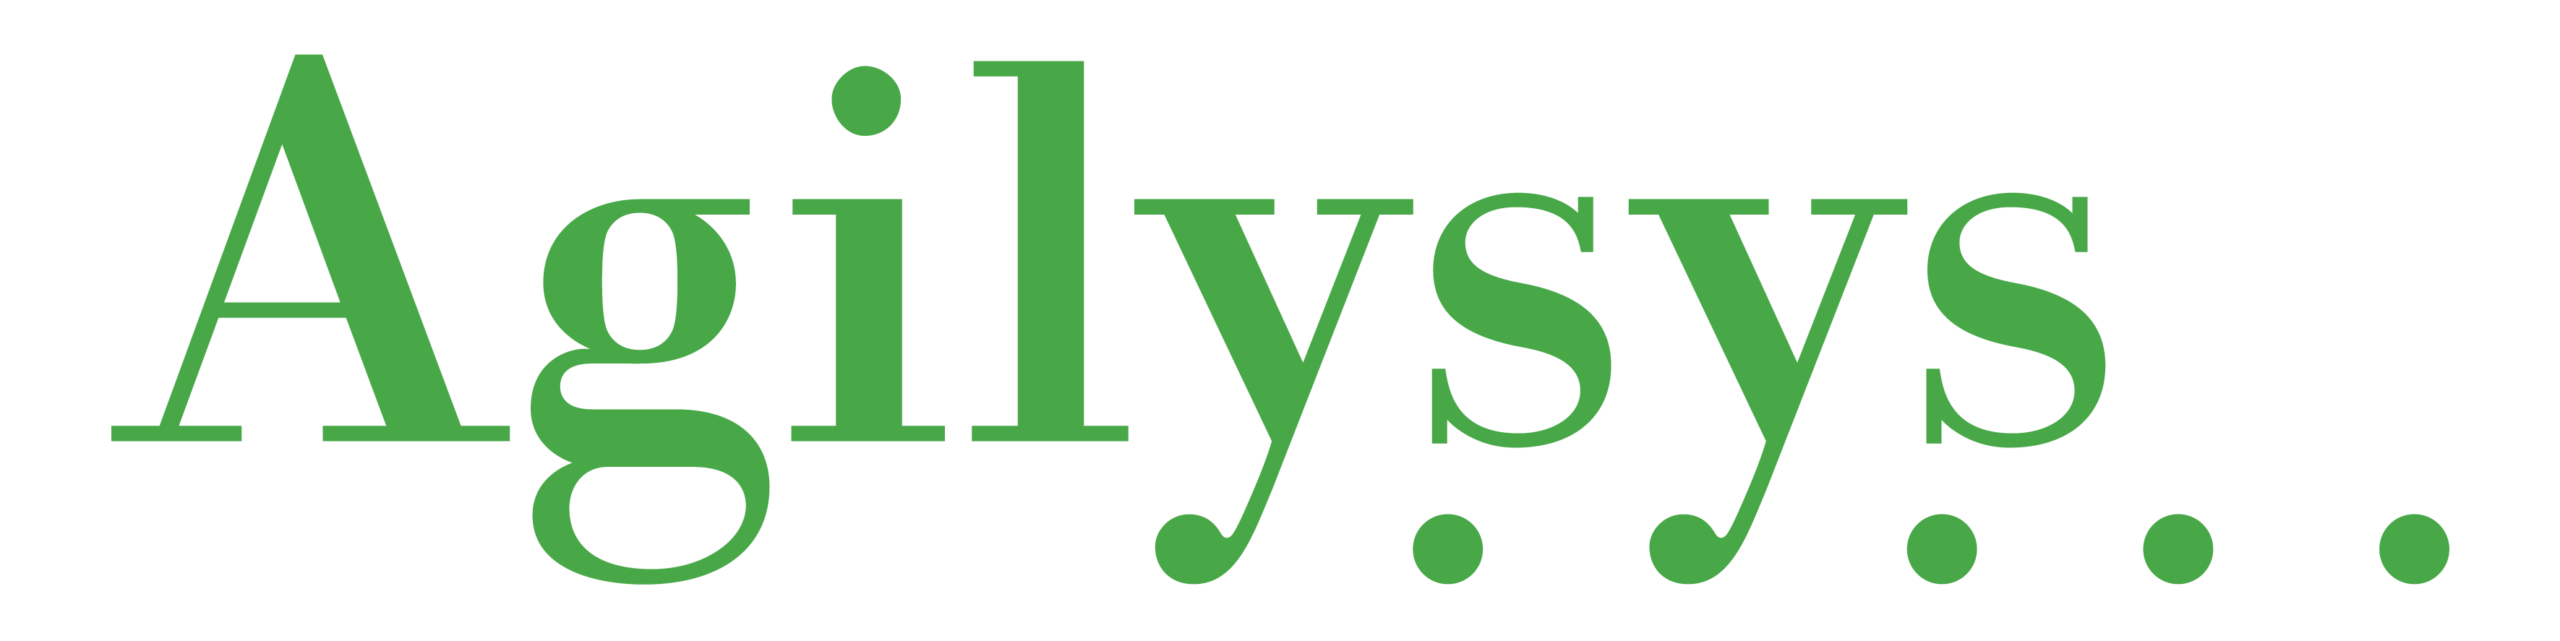 Hospitality Software & Solutions | Agilysys